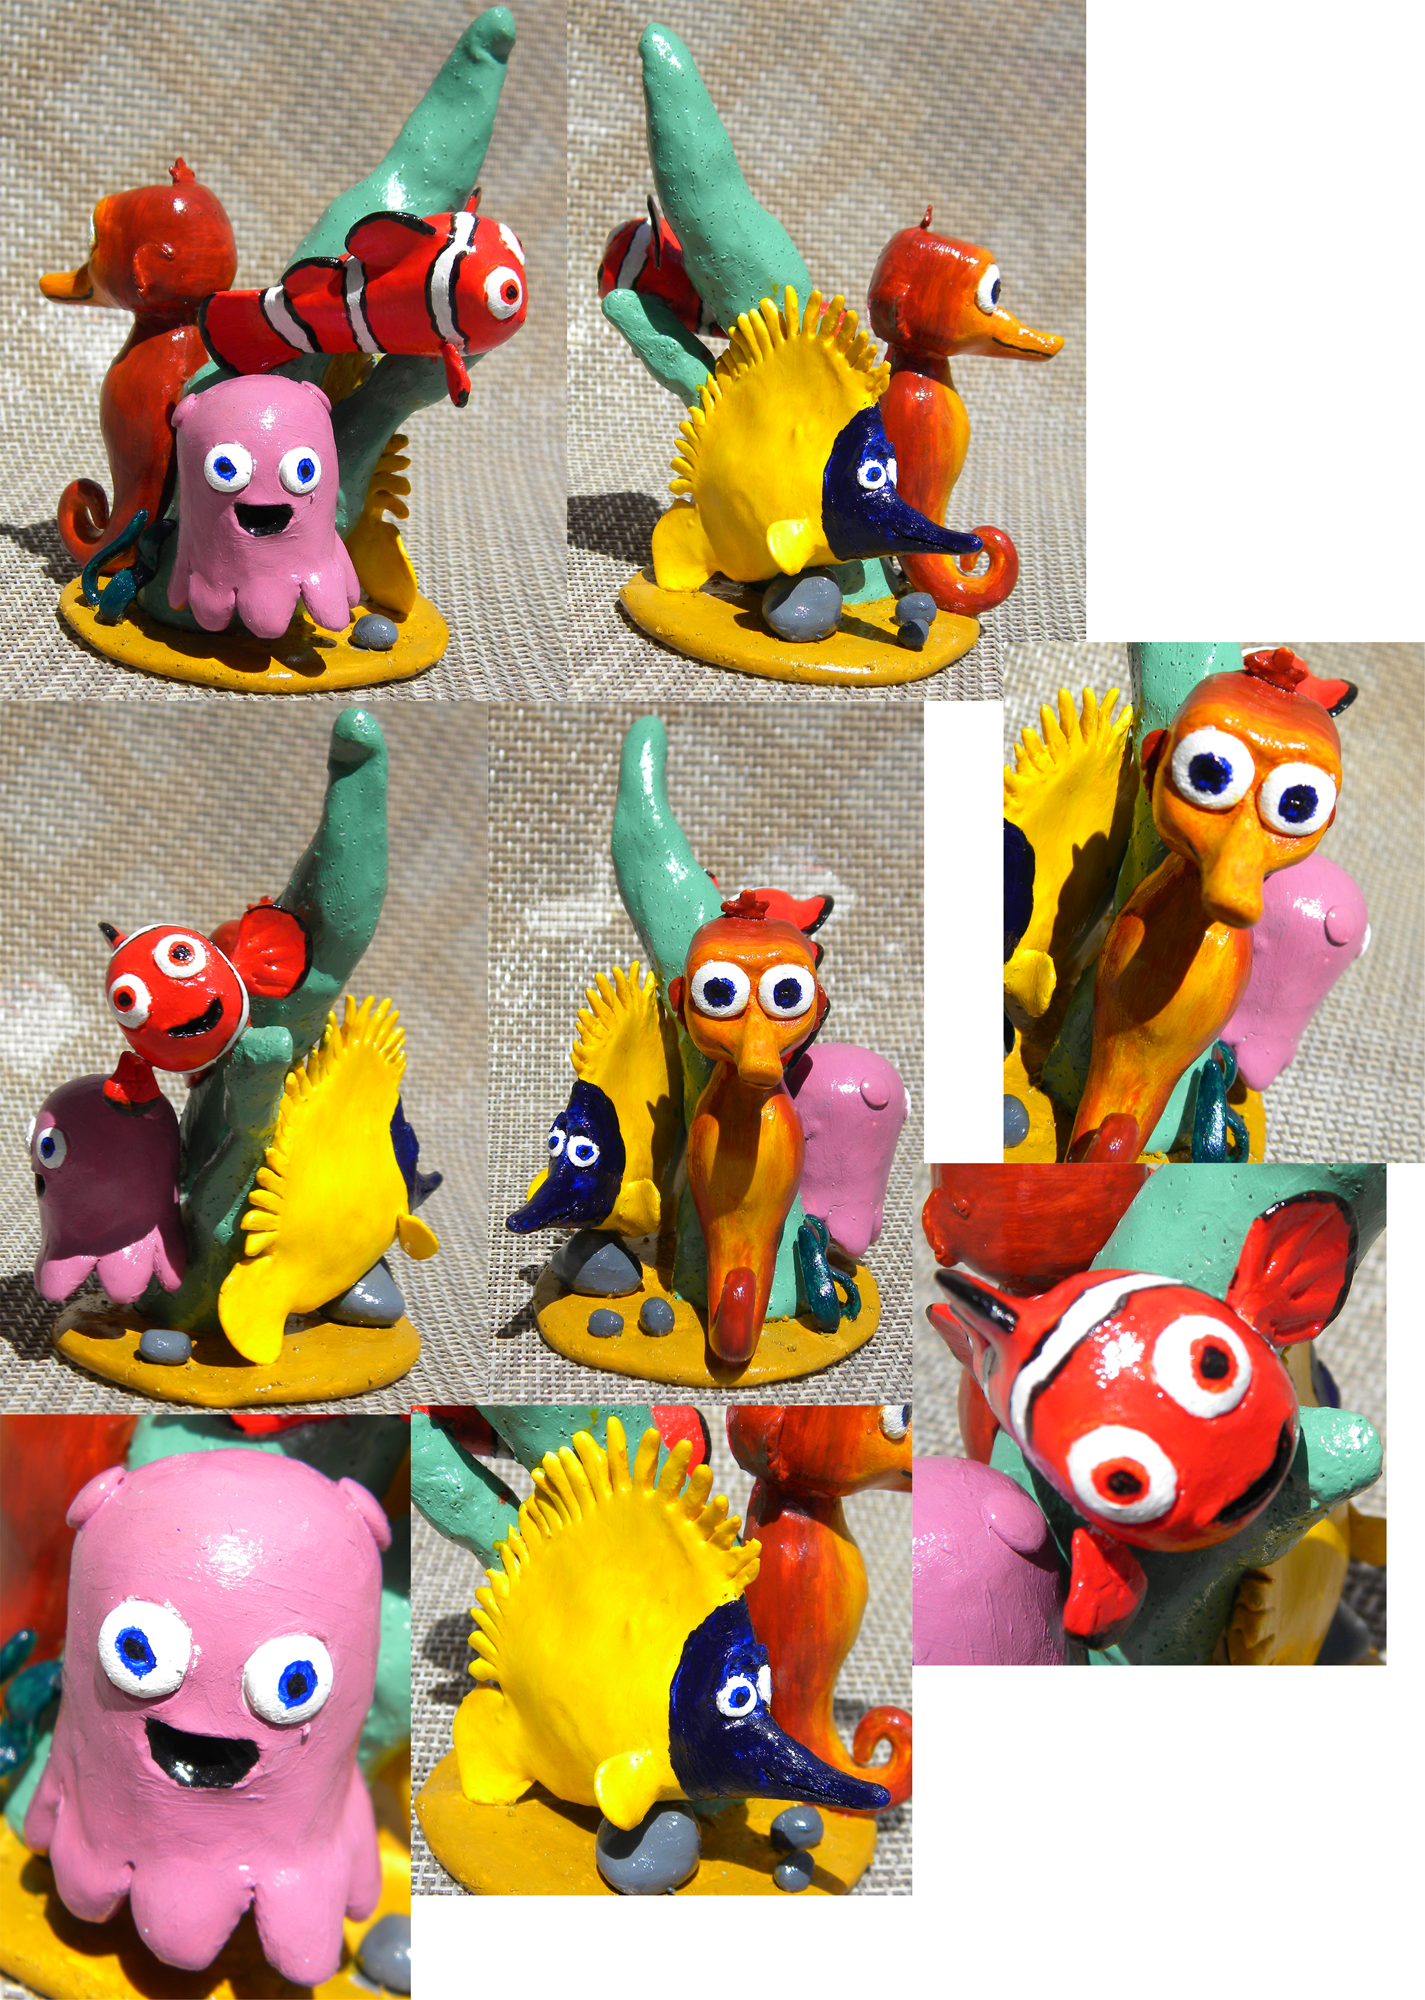 Nemo and friends sculpture